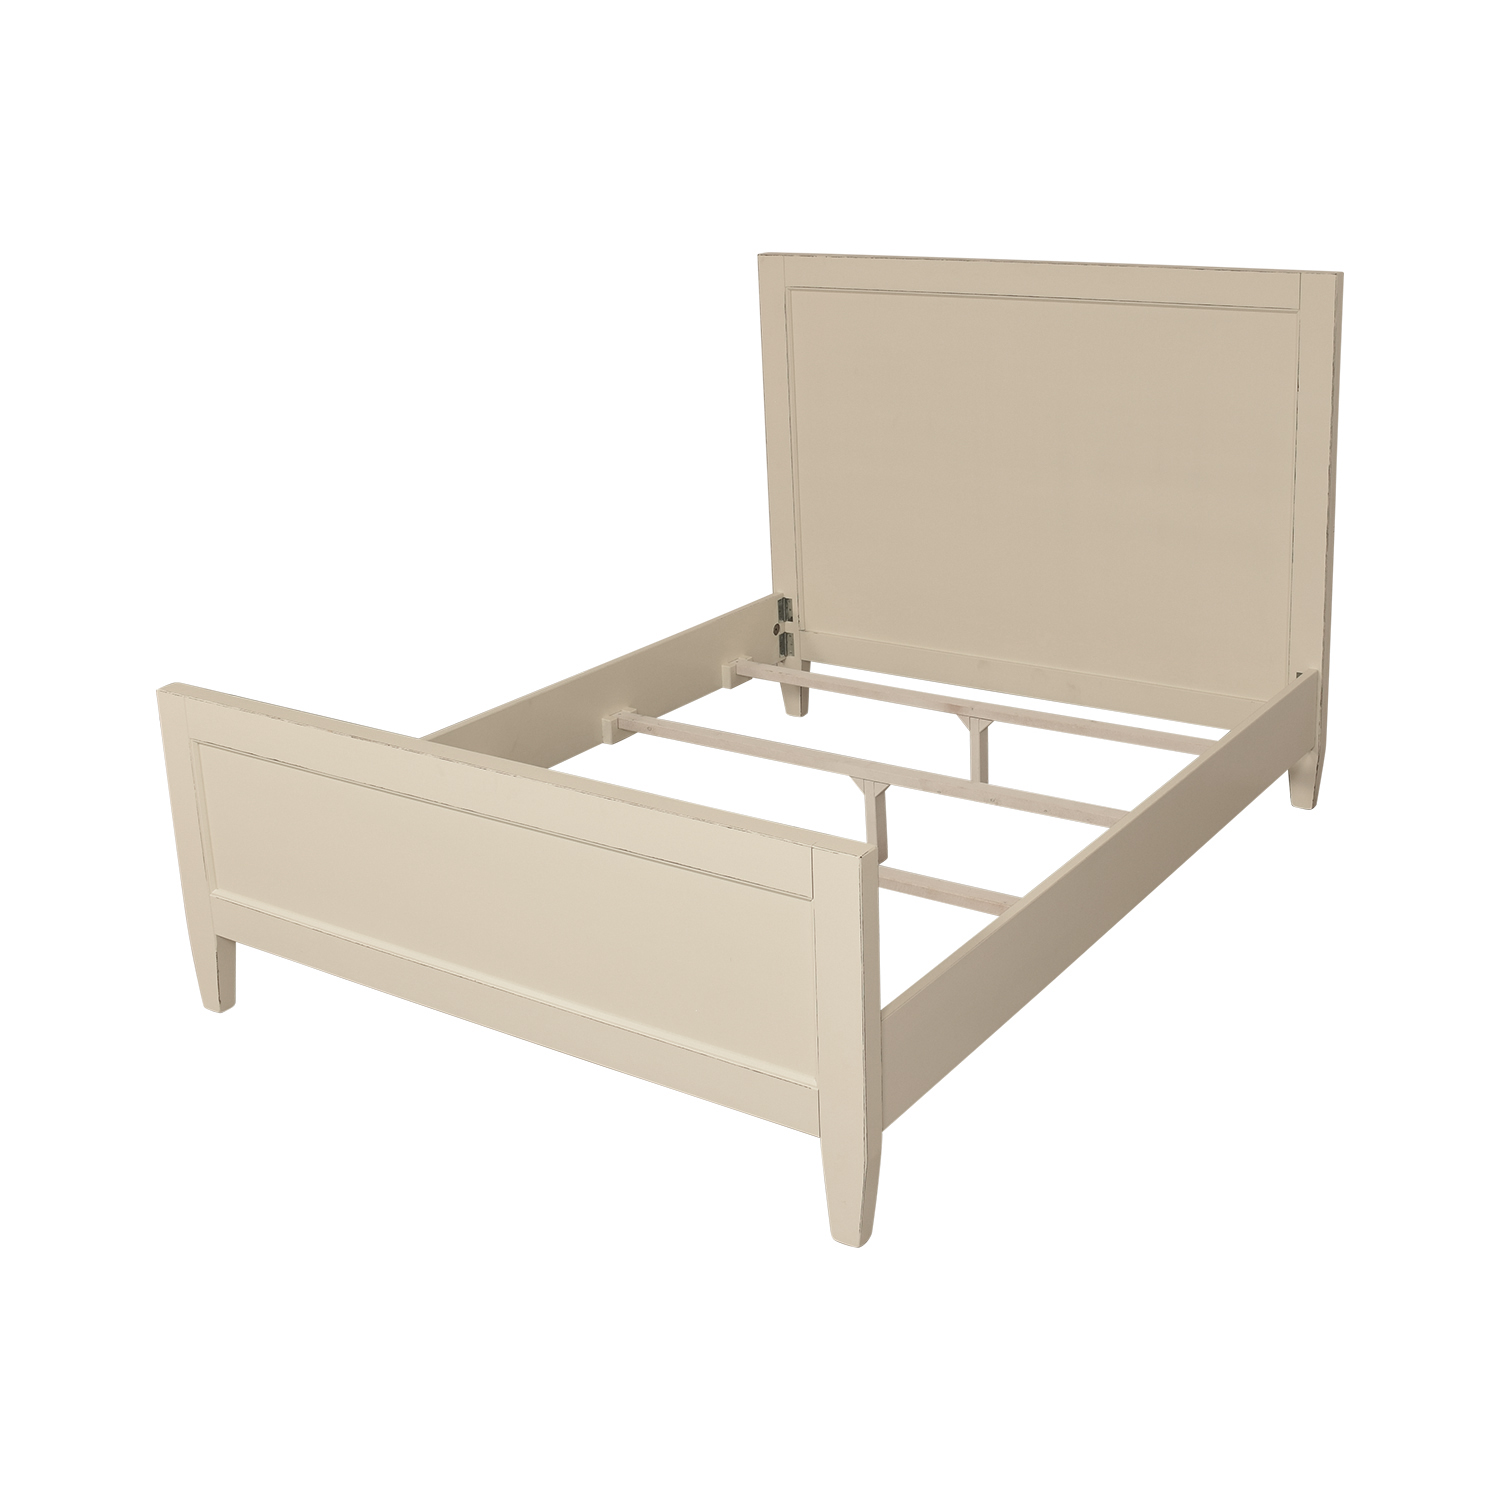 Crate & Barrel Crate & Barrel Queen Bed Frame ct